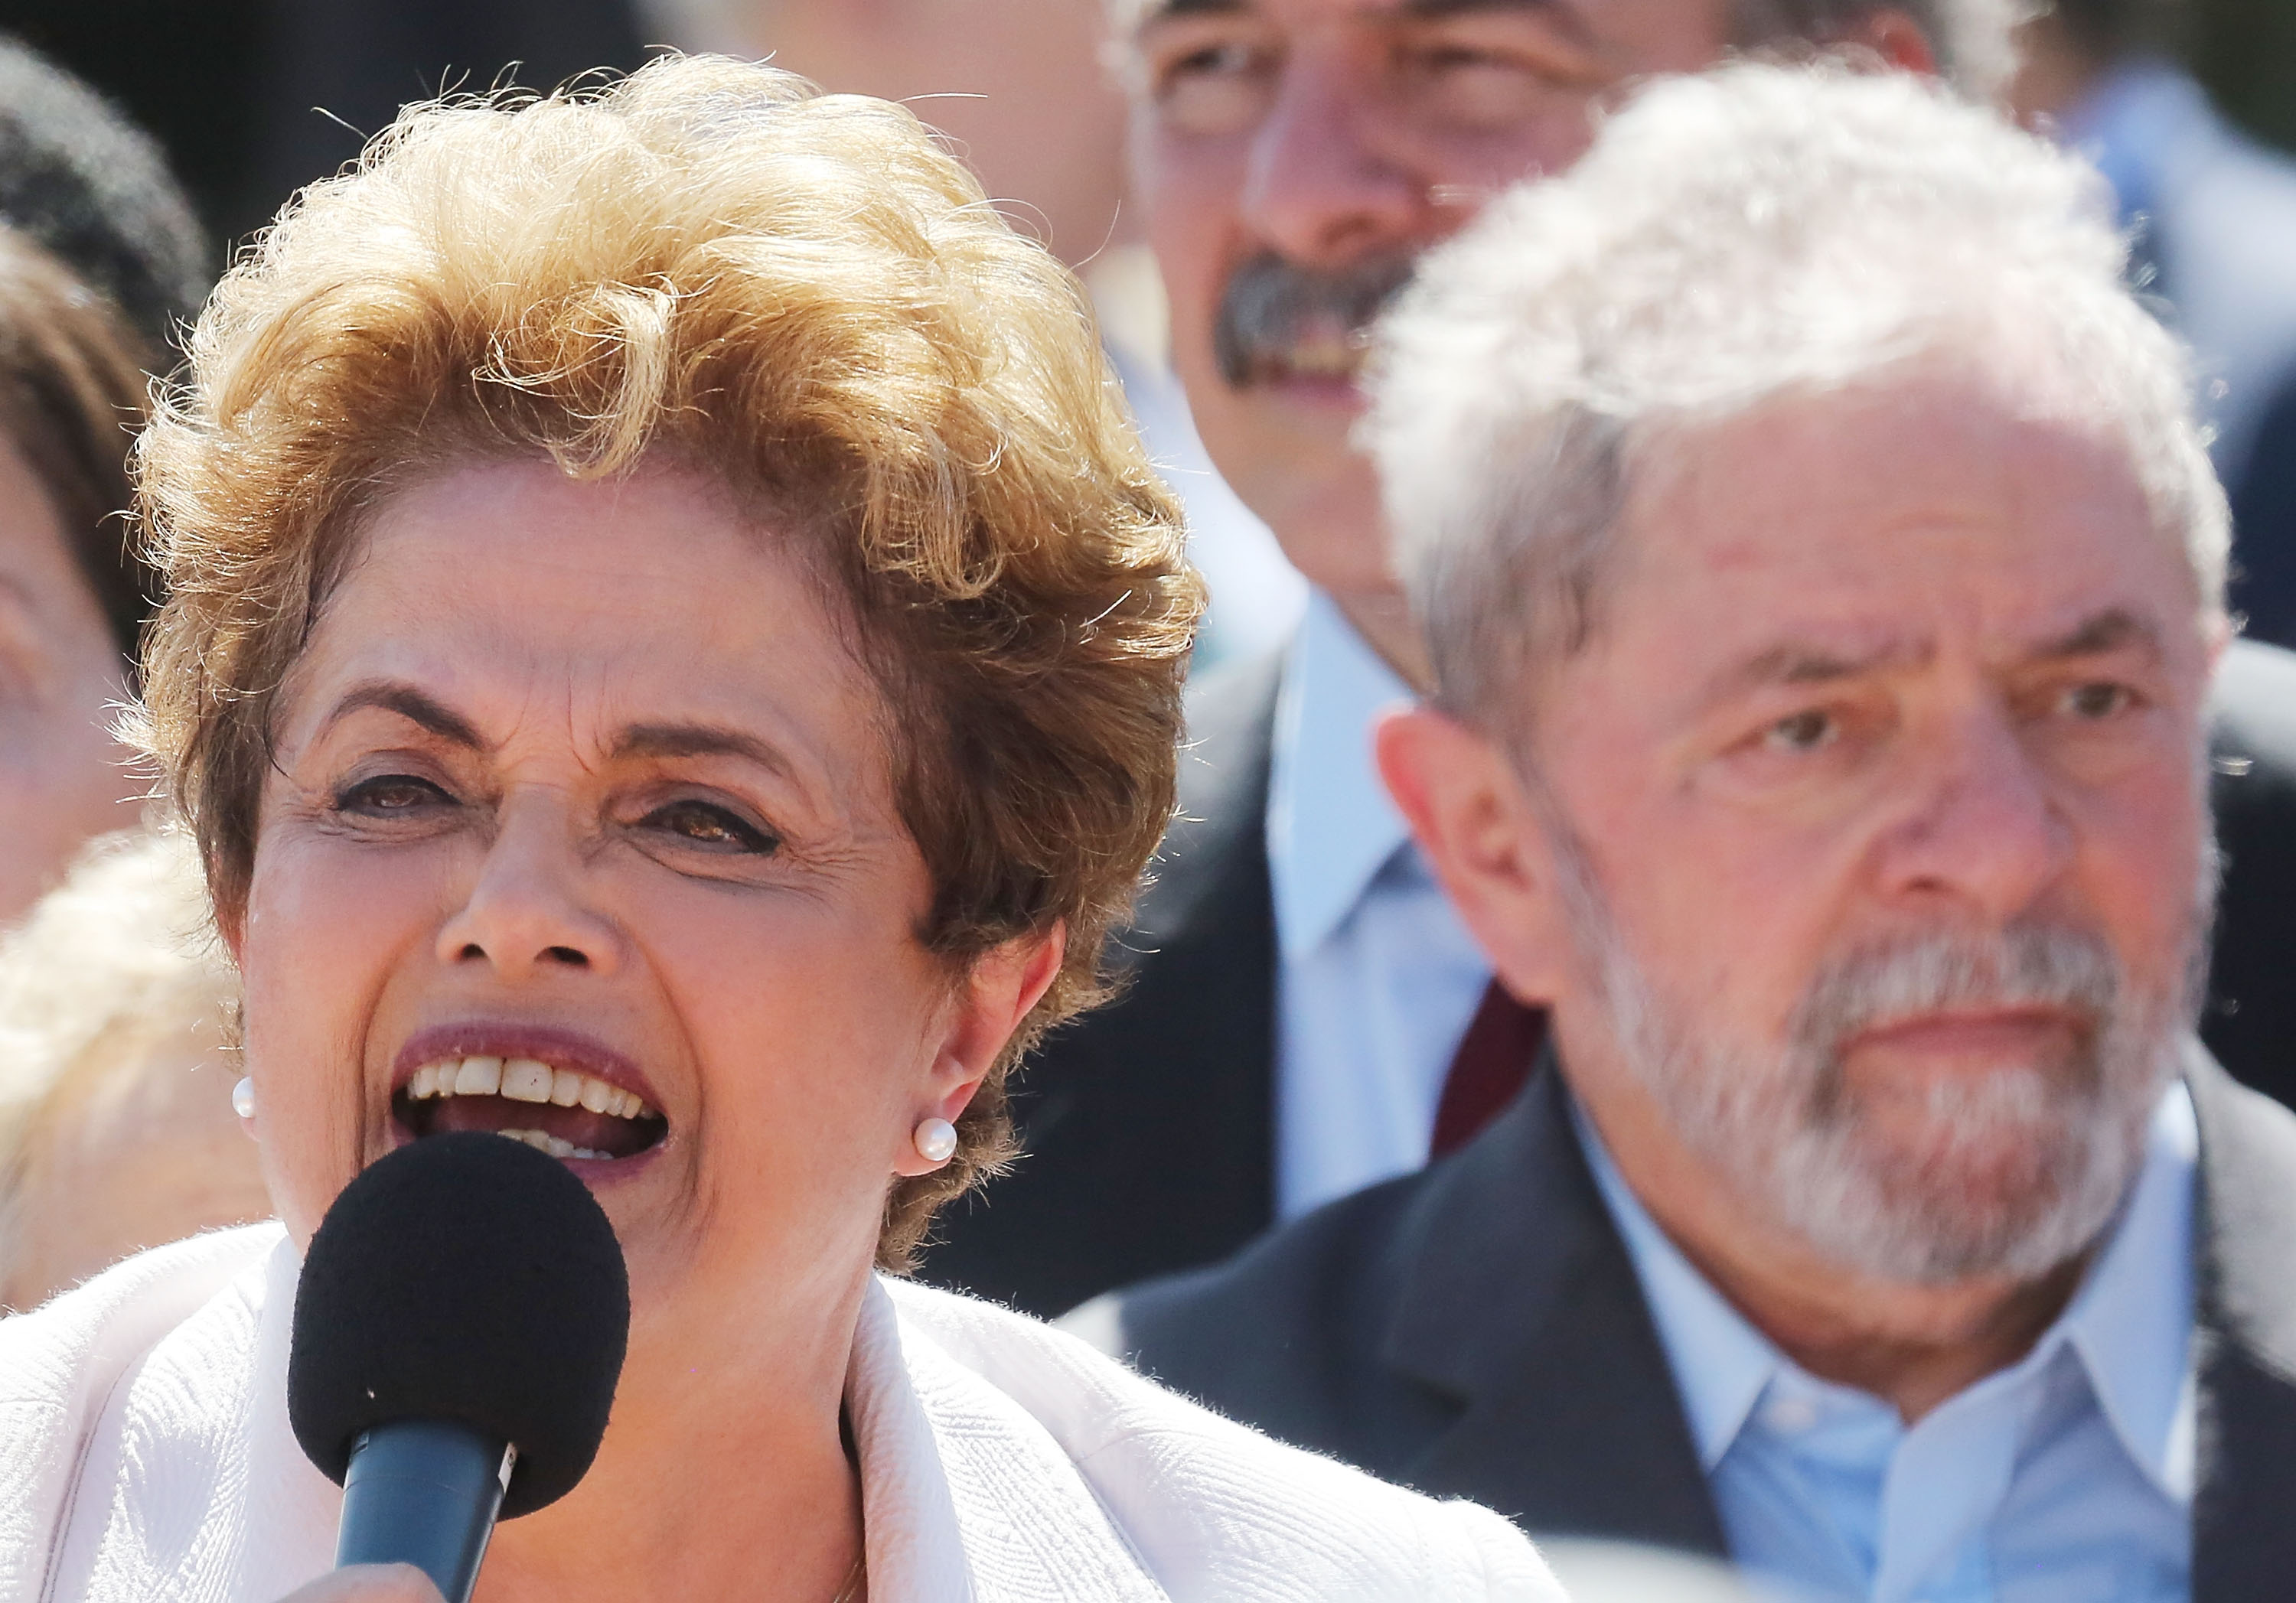 Suspended Brazilian President Dilma Rousseff and former President Luiz Inacio Lula da Silva at the Planalto presidential palace on May 12, 2016 in Brasilia, Brazil.